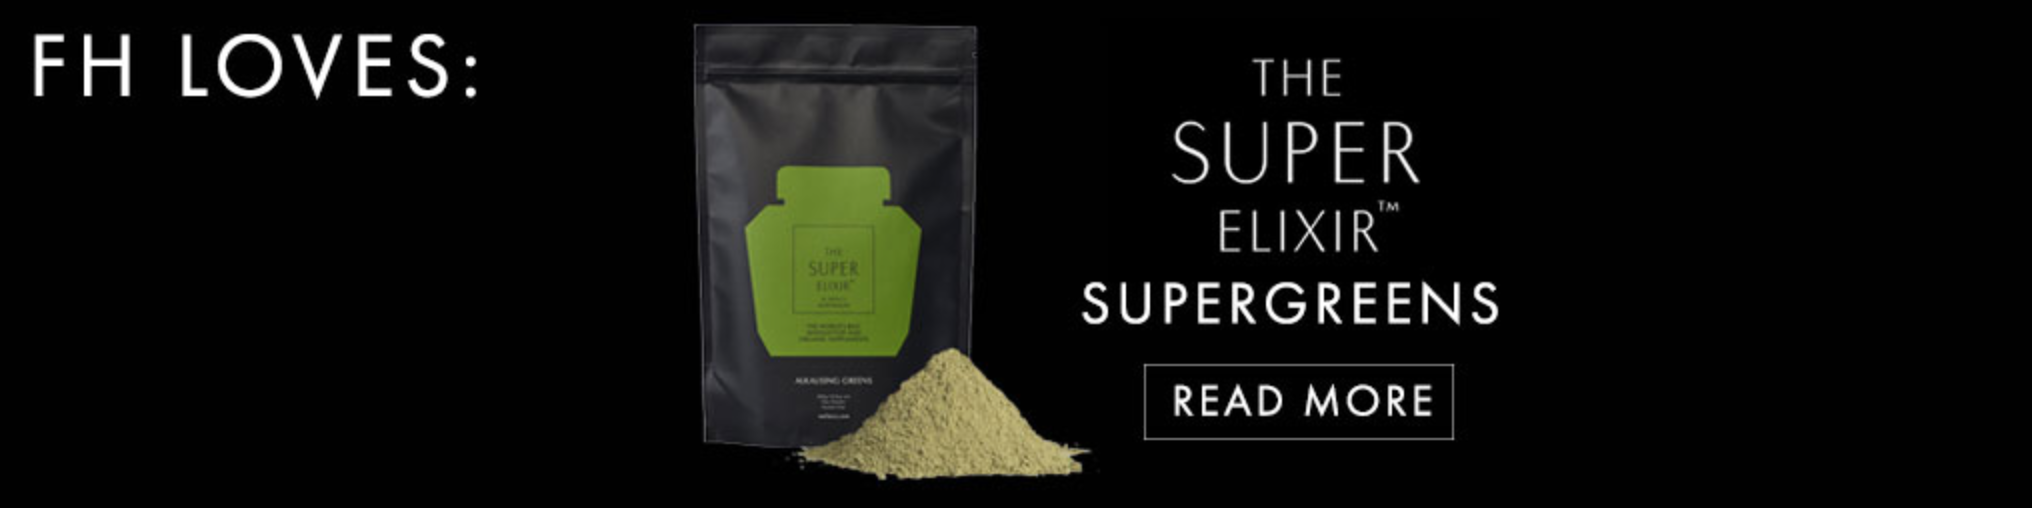 """The simple fact it's made by our own Elle Macpherson should be enough to get you wanting to try this designer black glass bottle of green powder - but what is it really that is making this Super Elixir take the health and beauty world by storm?  Made from over 40 different super foods and gracing the """"must have' daily products with the likes of Kate Moss, this is a morning routine you need in your life. It contains Acia, Beta Caroten, D-Biotin, Wheat grass, Zinc Citrate, Alfalfa, Barley Grass, Grapeseed Extract, Beetroot, Calcium and more.....but what do all these do?  In a simple word - EVERYTHING. From keeping your hair thick, your skin sparkling, your bones healthy and strong this super greens powder adds a little extra something to all those important bits and bobs in your body!  Want to get it now or learn more....head to  WelleCo  and get yourself a bottle today!"""